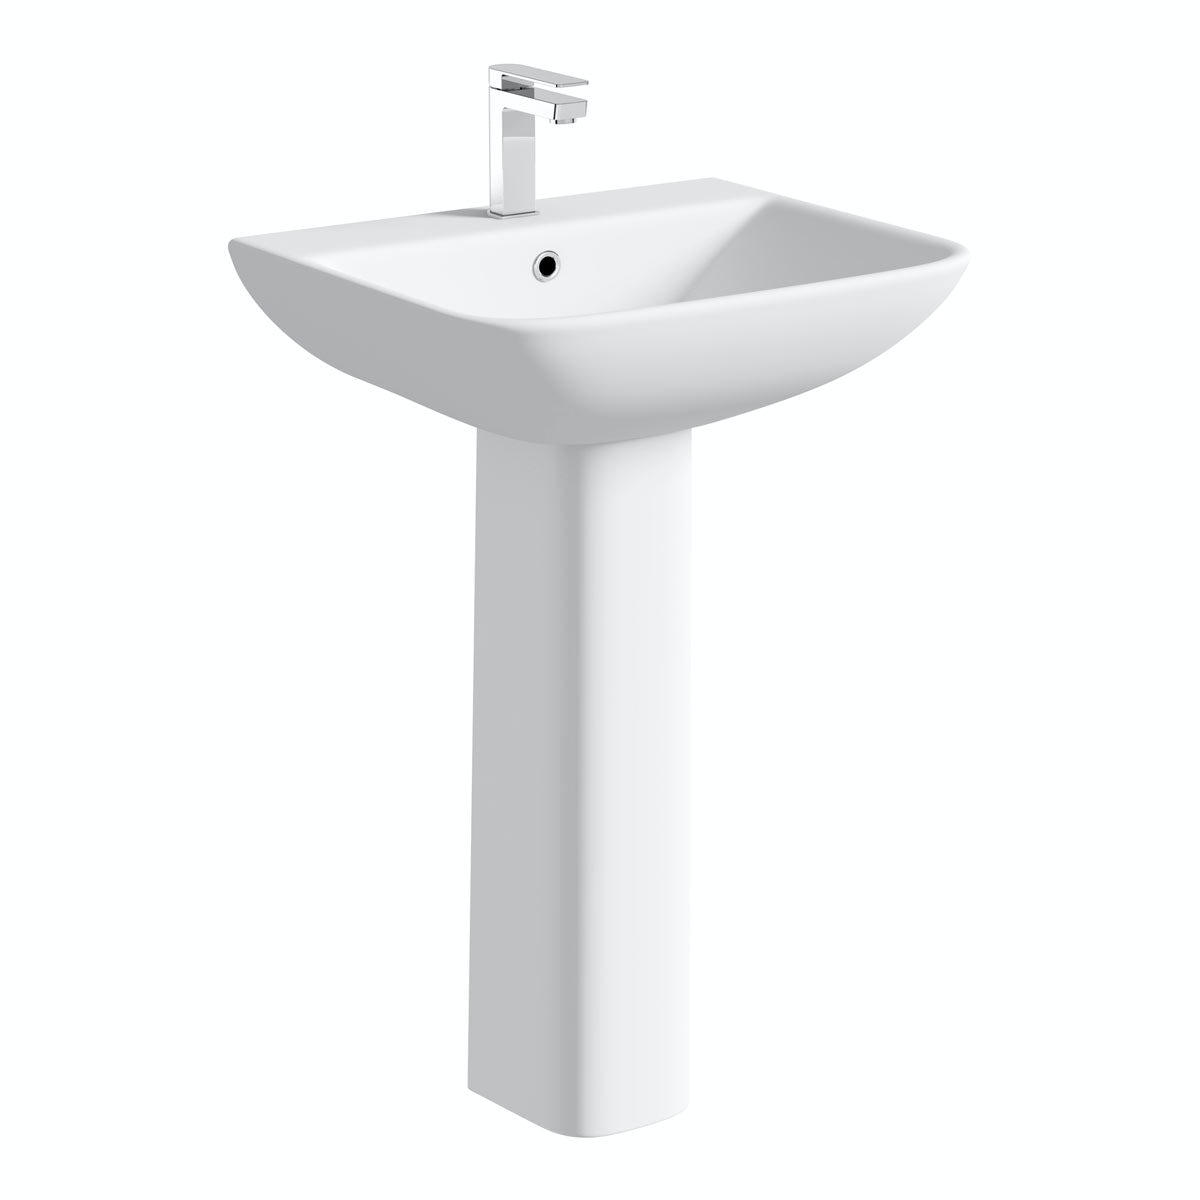 Orchard Derwent square 1 tap hole full pedestal basin 550mm with waste